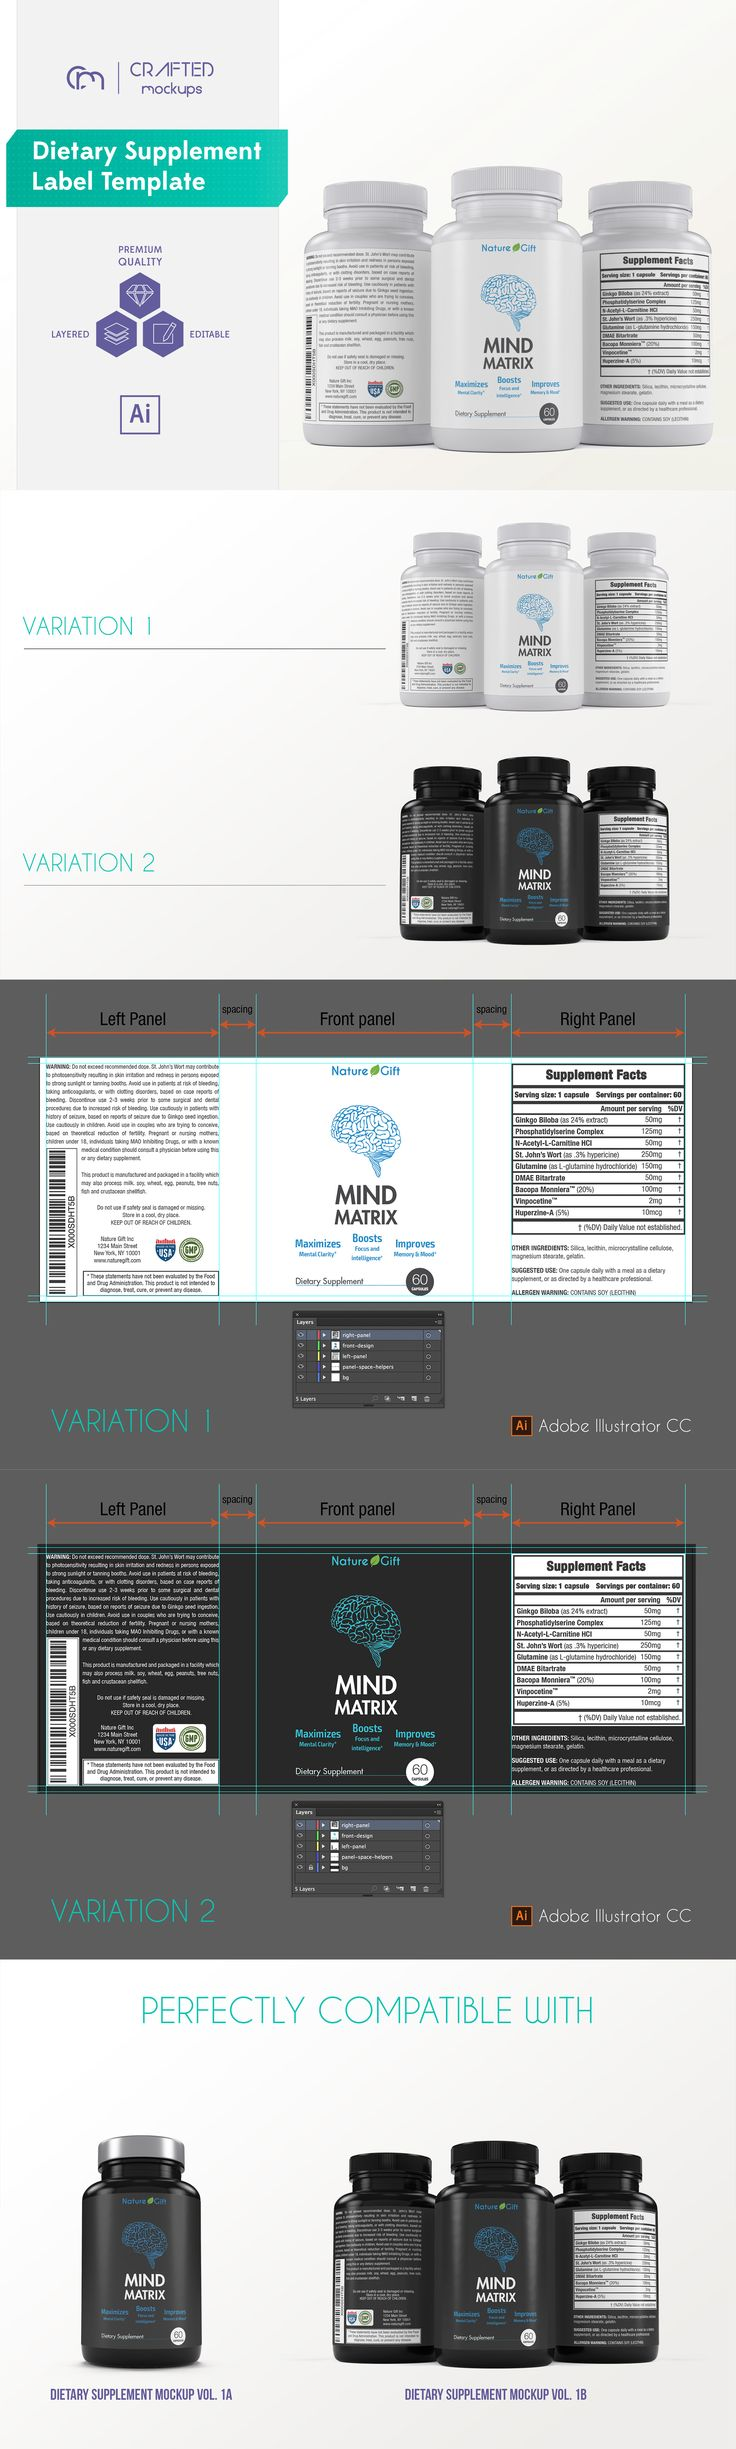 free template for business card psd nutrition dietary supplement design label